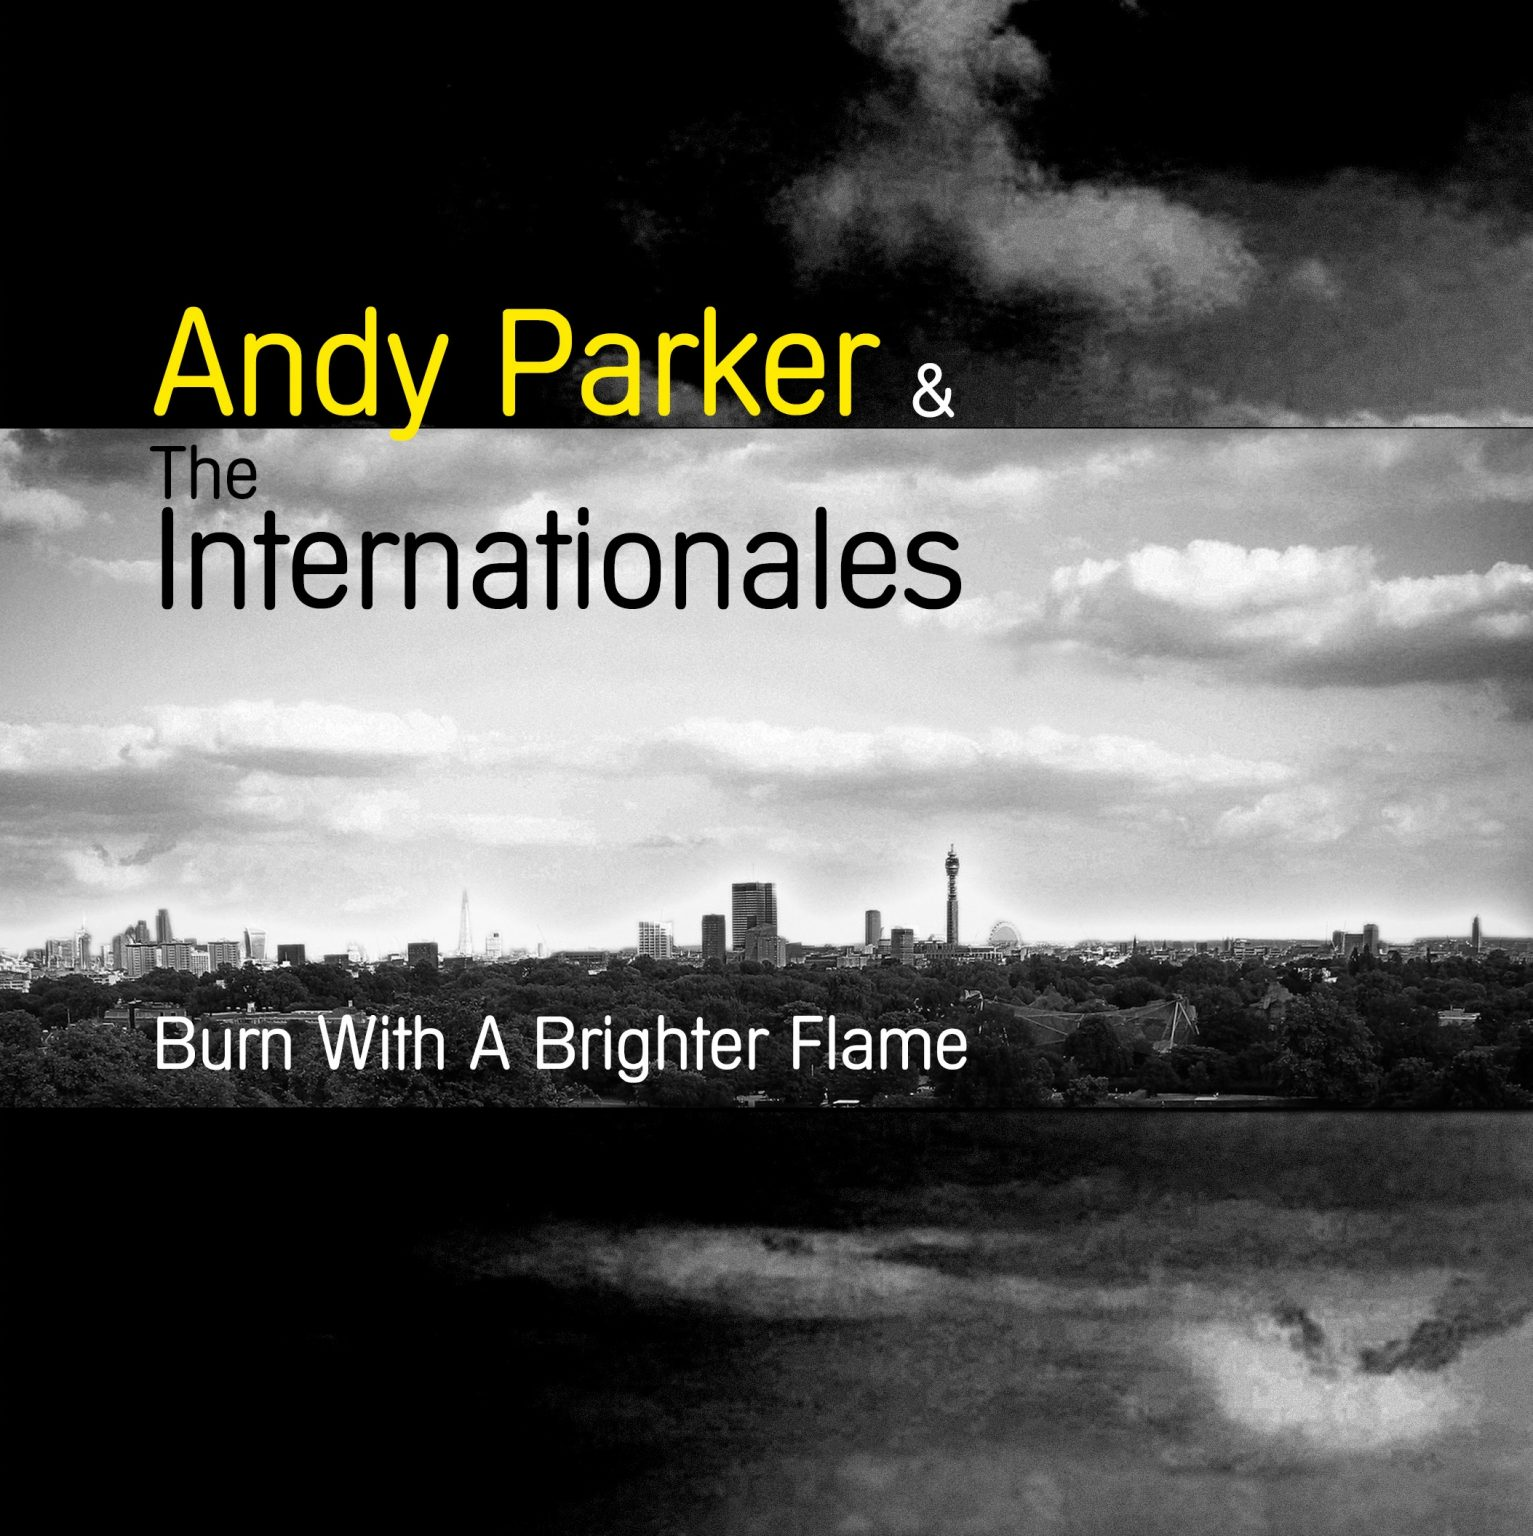 Burn With A Brighter Flame - Andy Parker and the Internationales